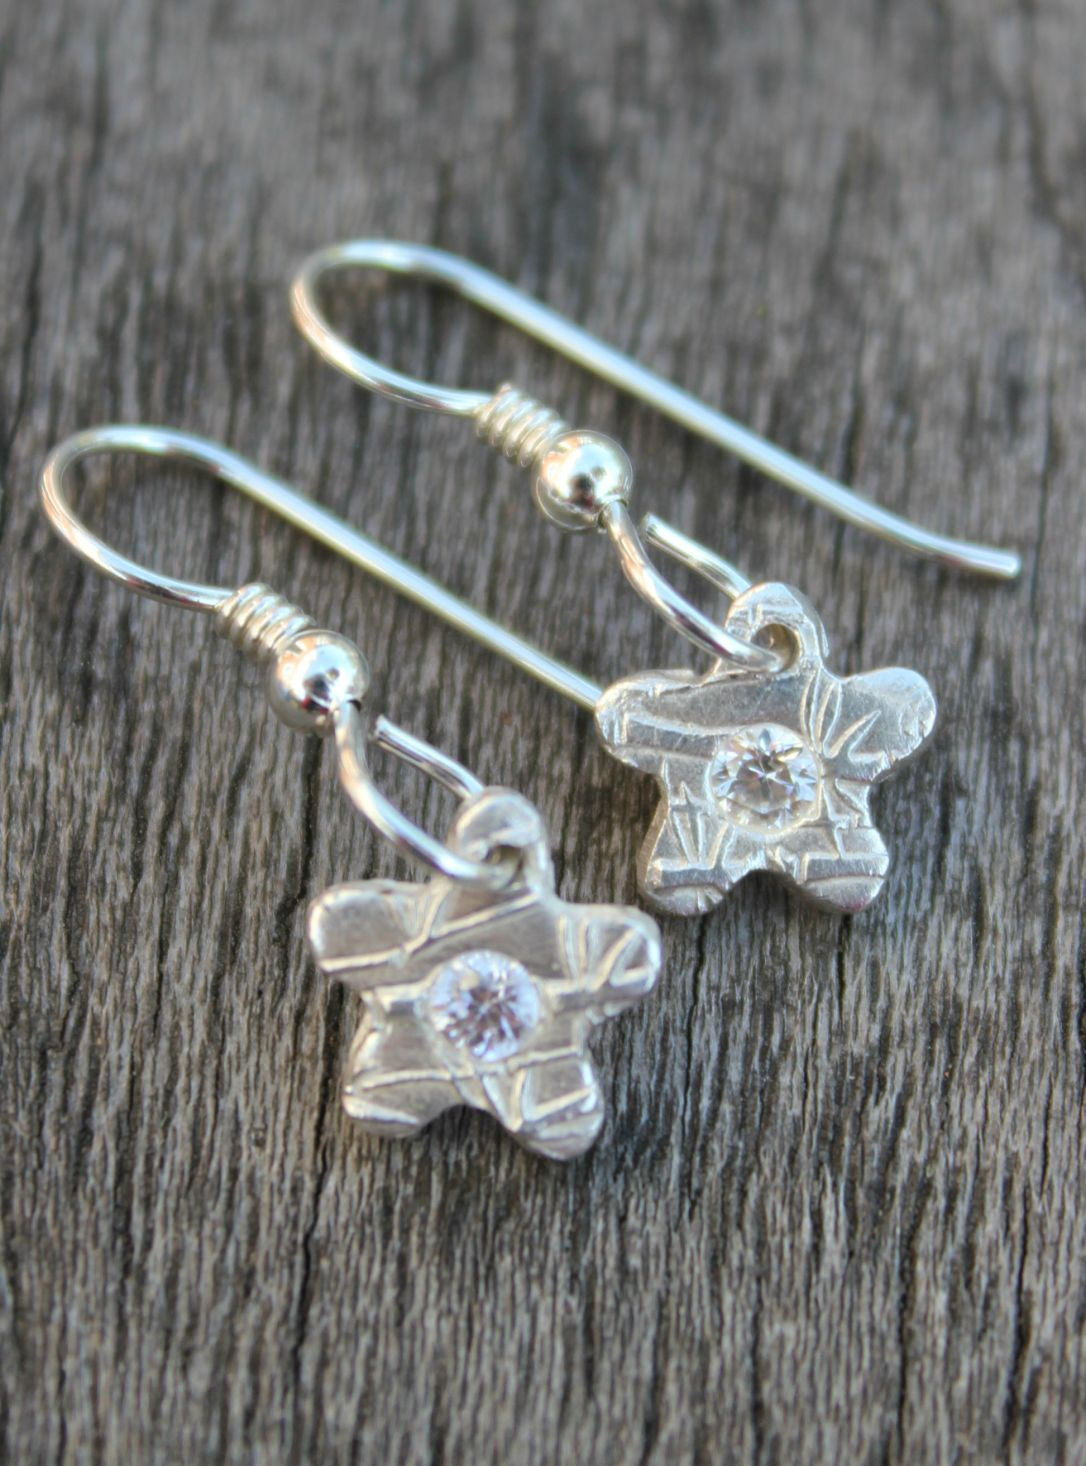 White topaz flower earrings by little silver hedgehog.JPG